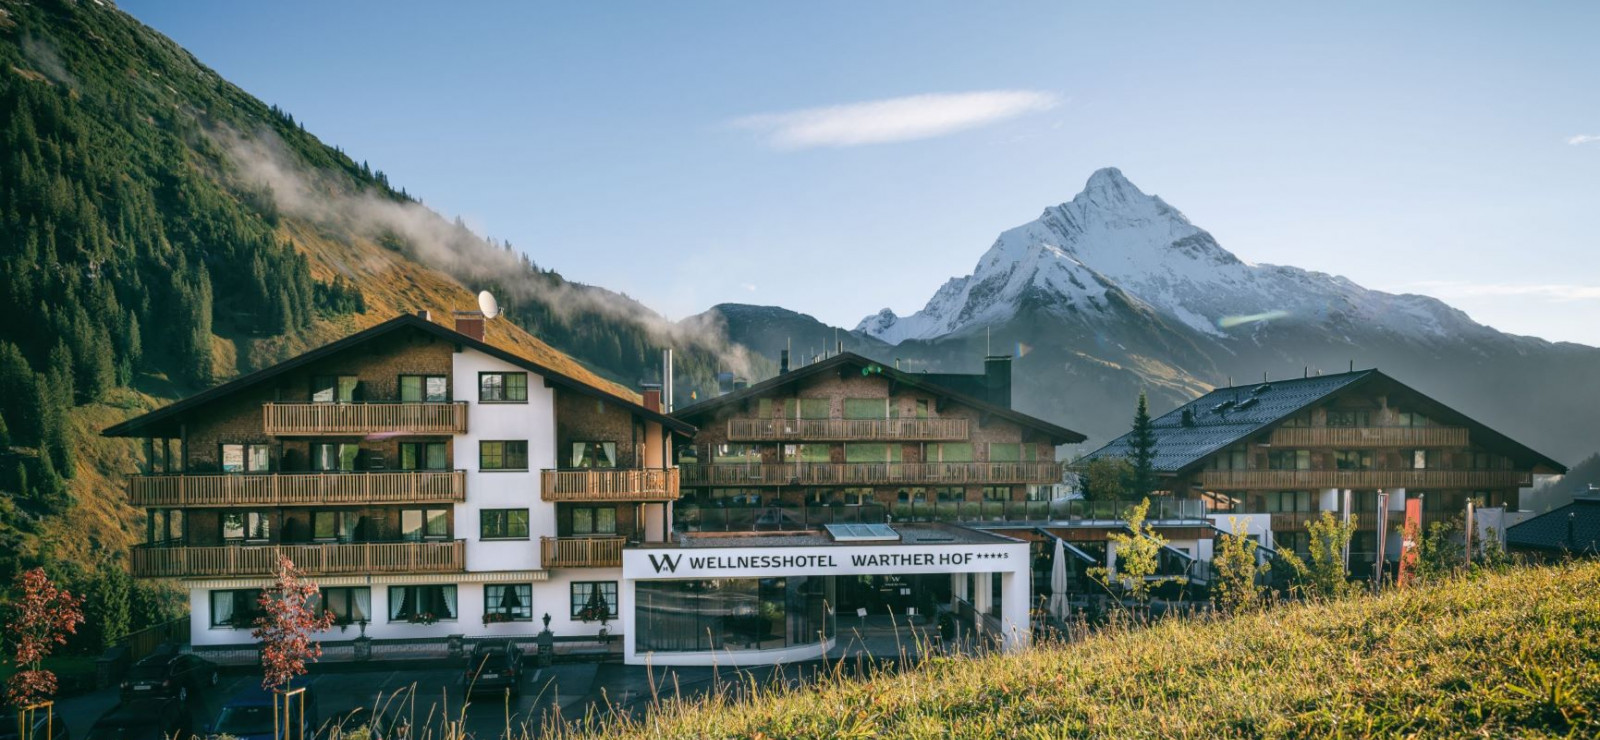 Wellnesshotel Wellnesshotel Warther Hof | Warth am Arlberg